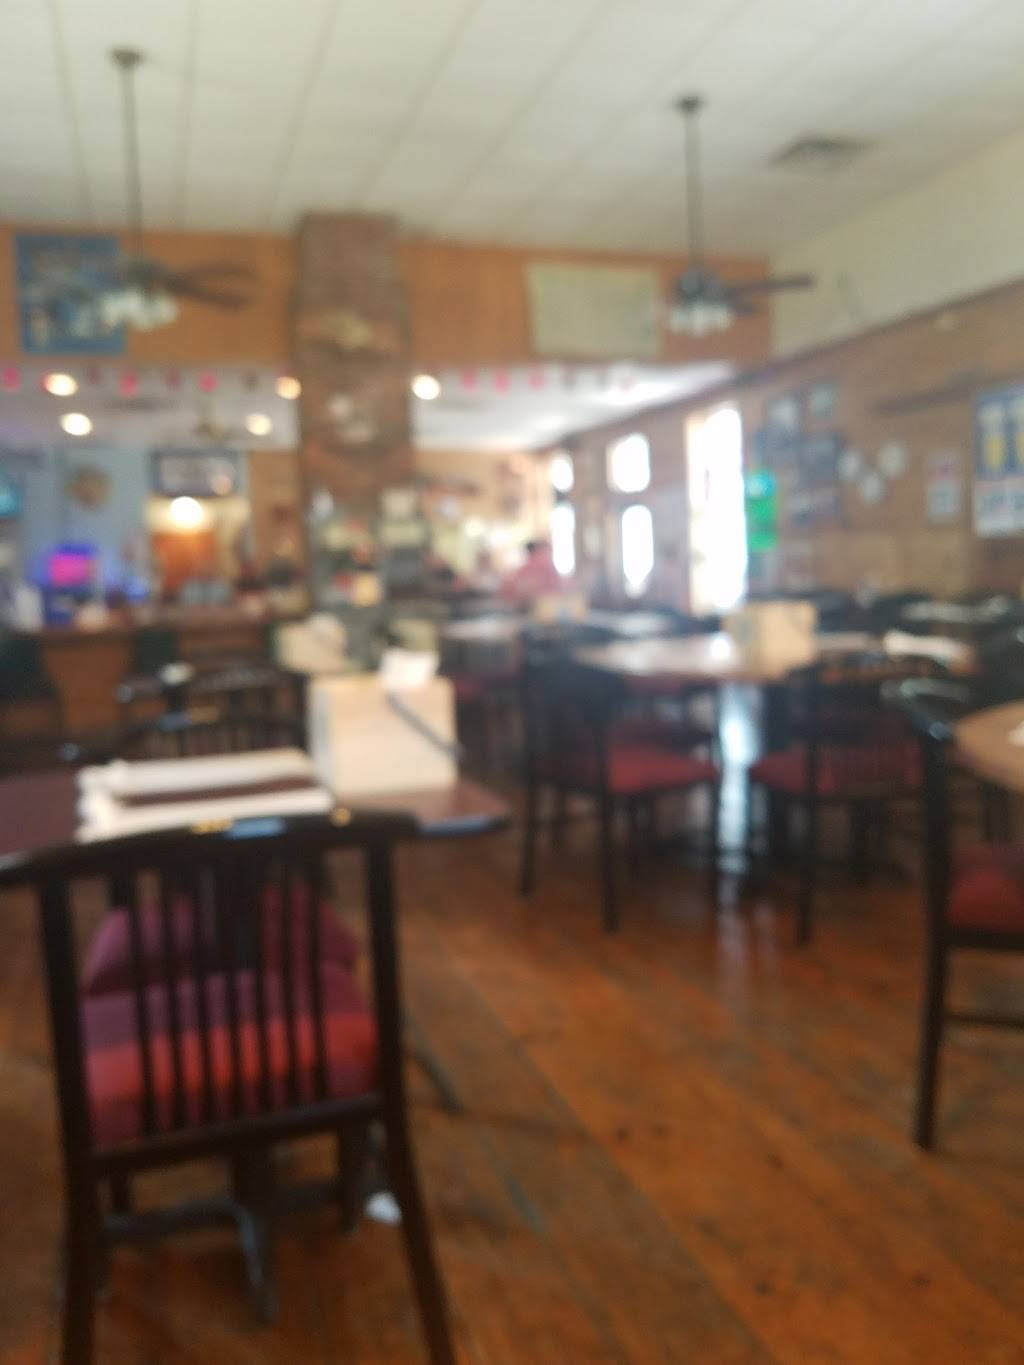 New Windsor Depot   restaurant   110 S 5th Ave, Windsor, IL 61465, USA   3096672801 OR +1 309-667-2801